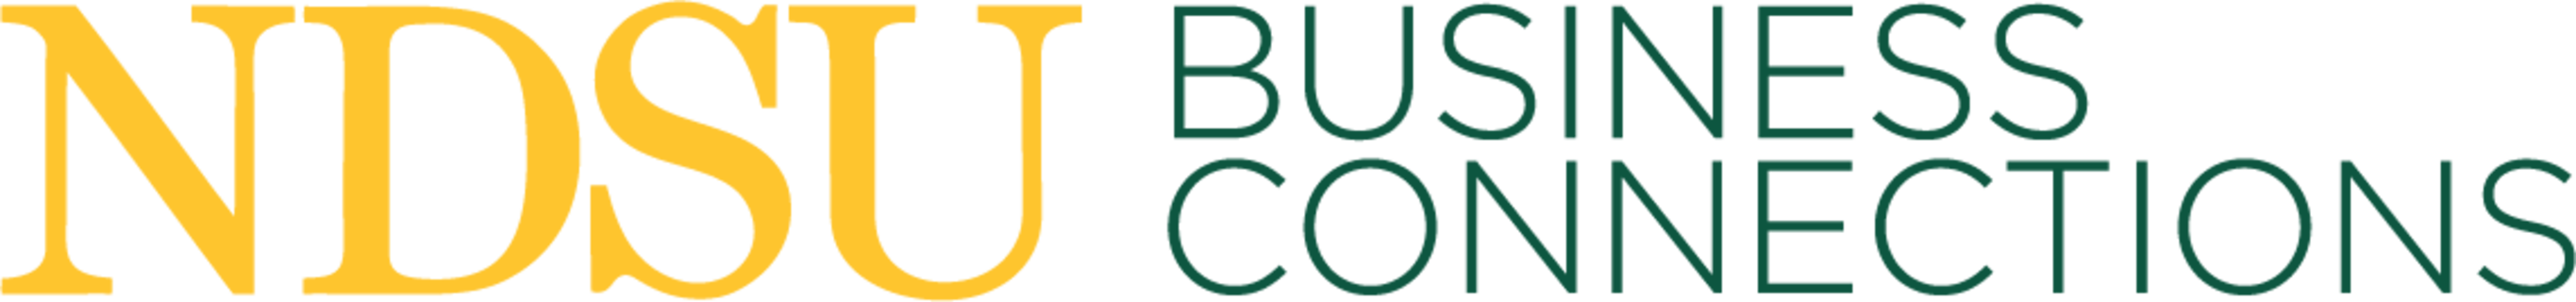 NDSU College of Business - Business Connections logo